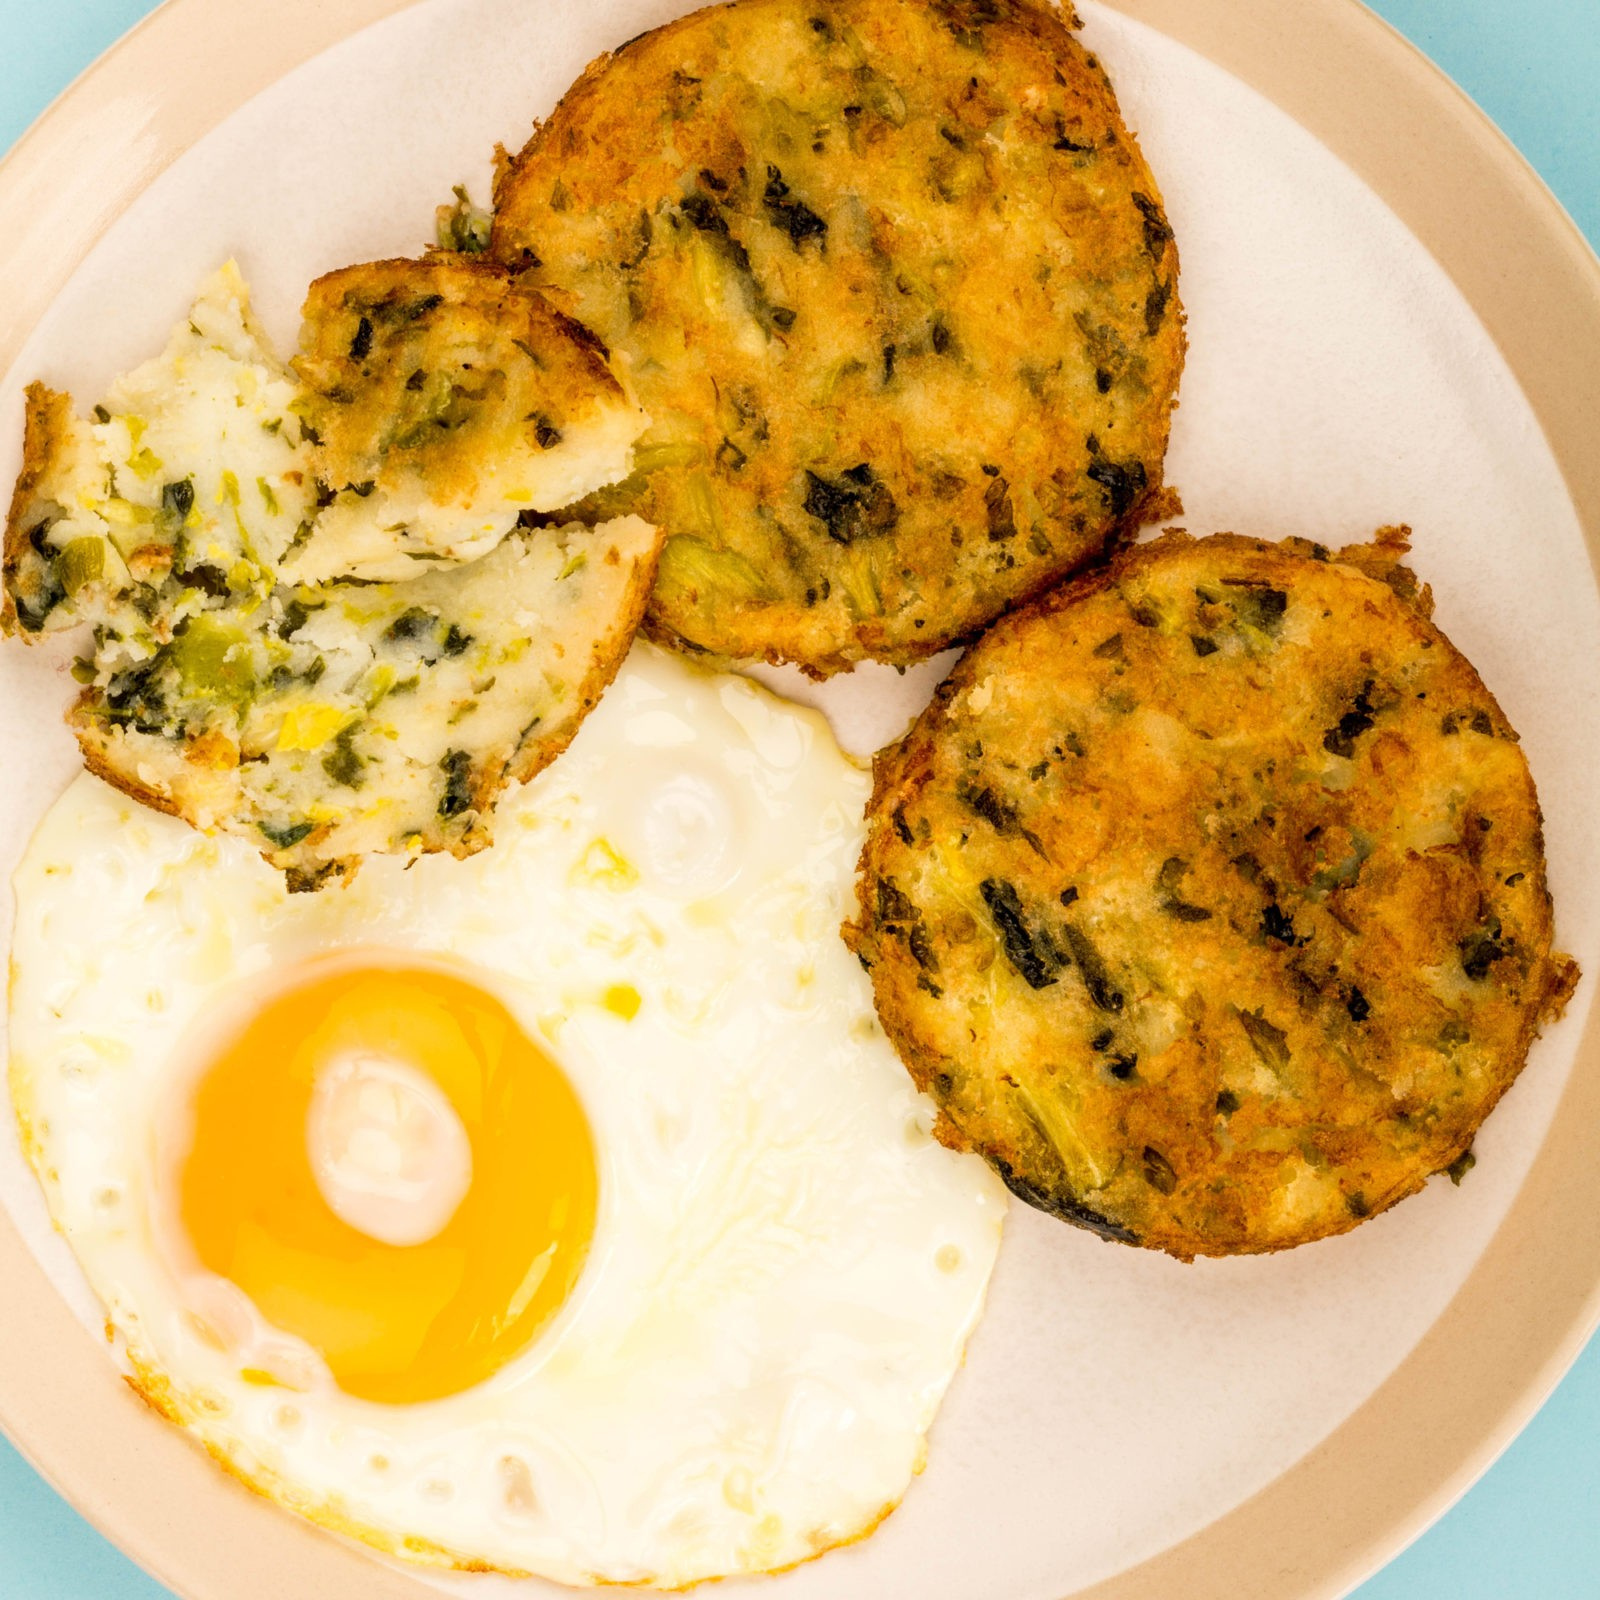 London typical food Cooked Vegetarian Bubble And Squeak Cakes With A Fried Egg